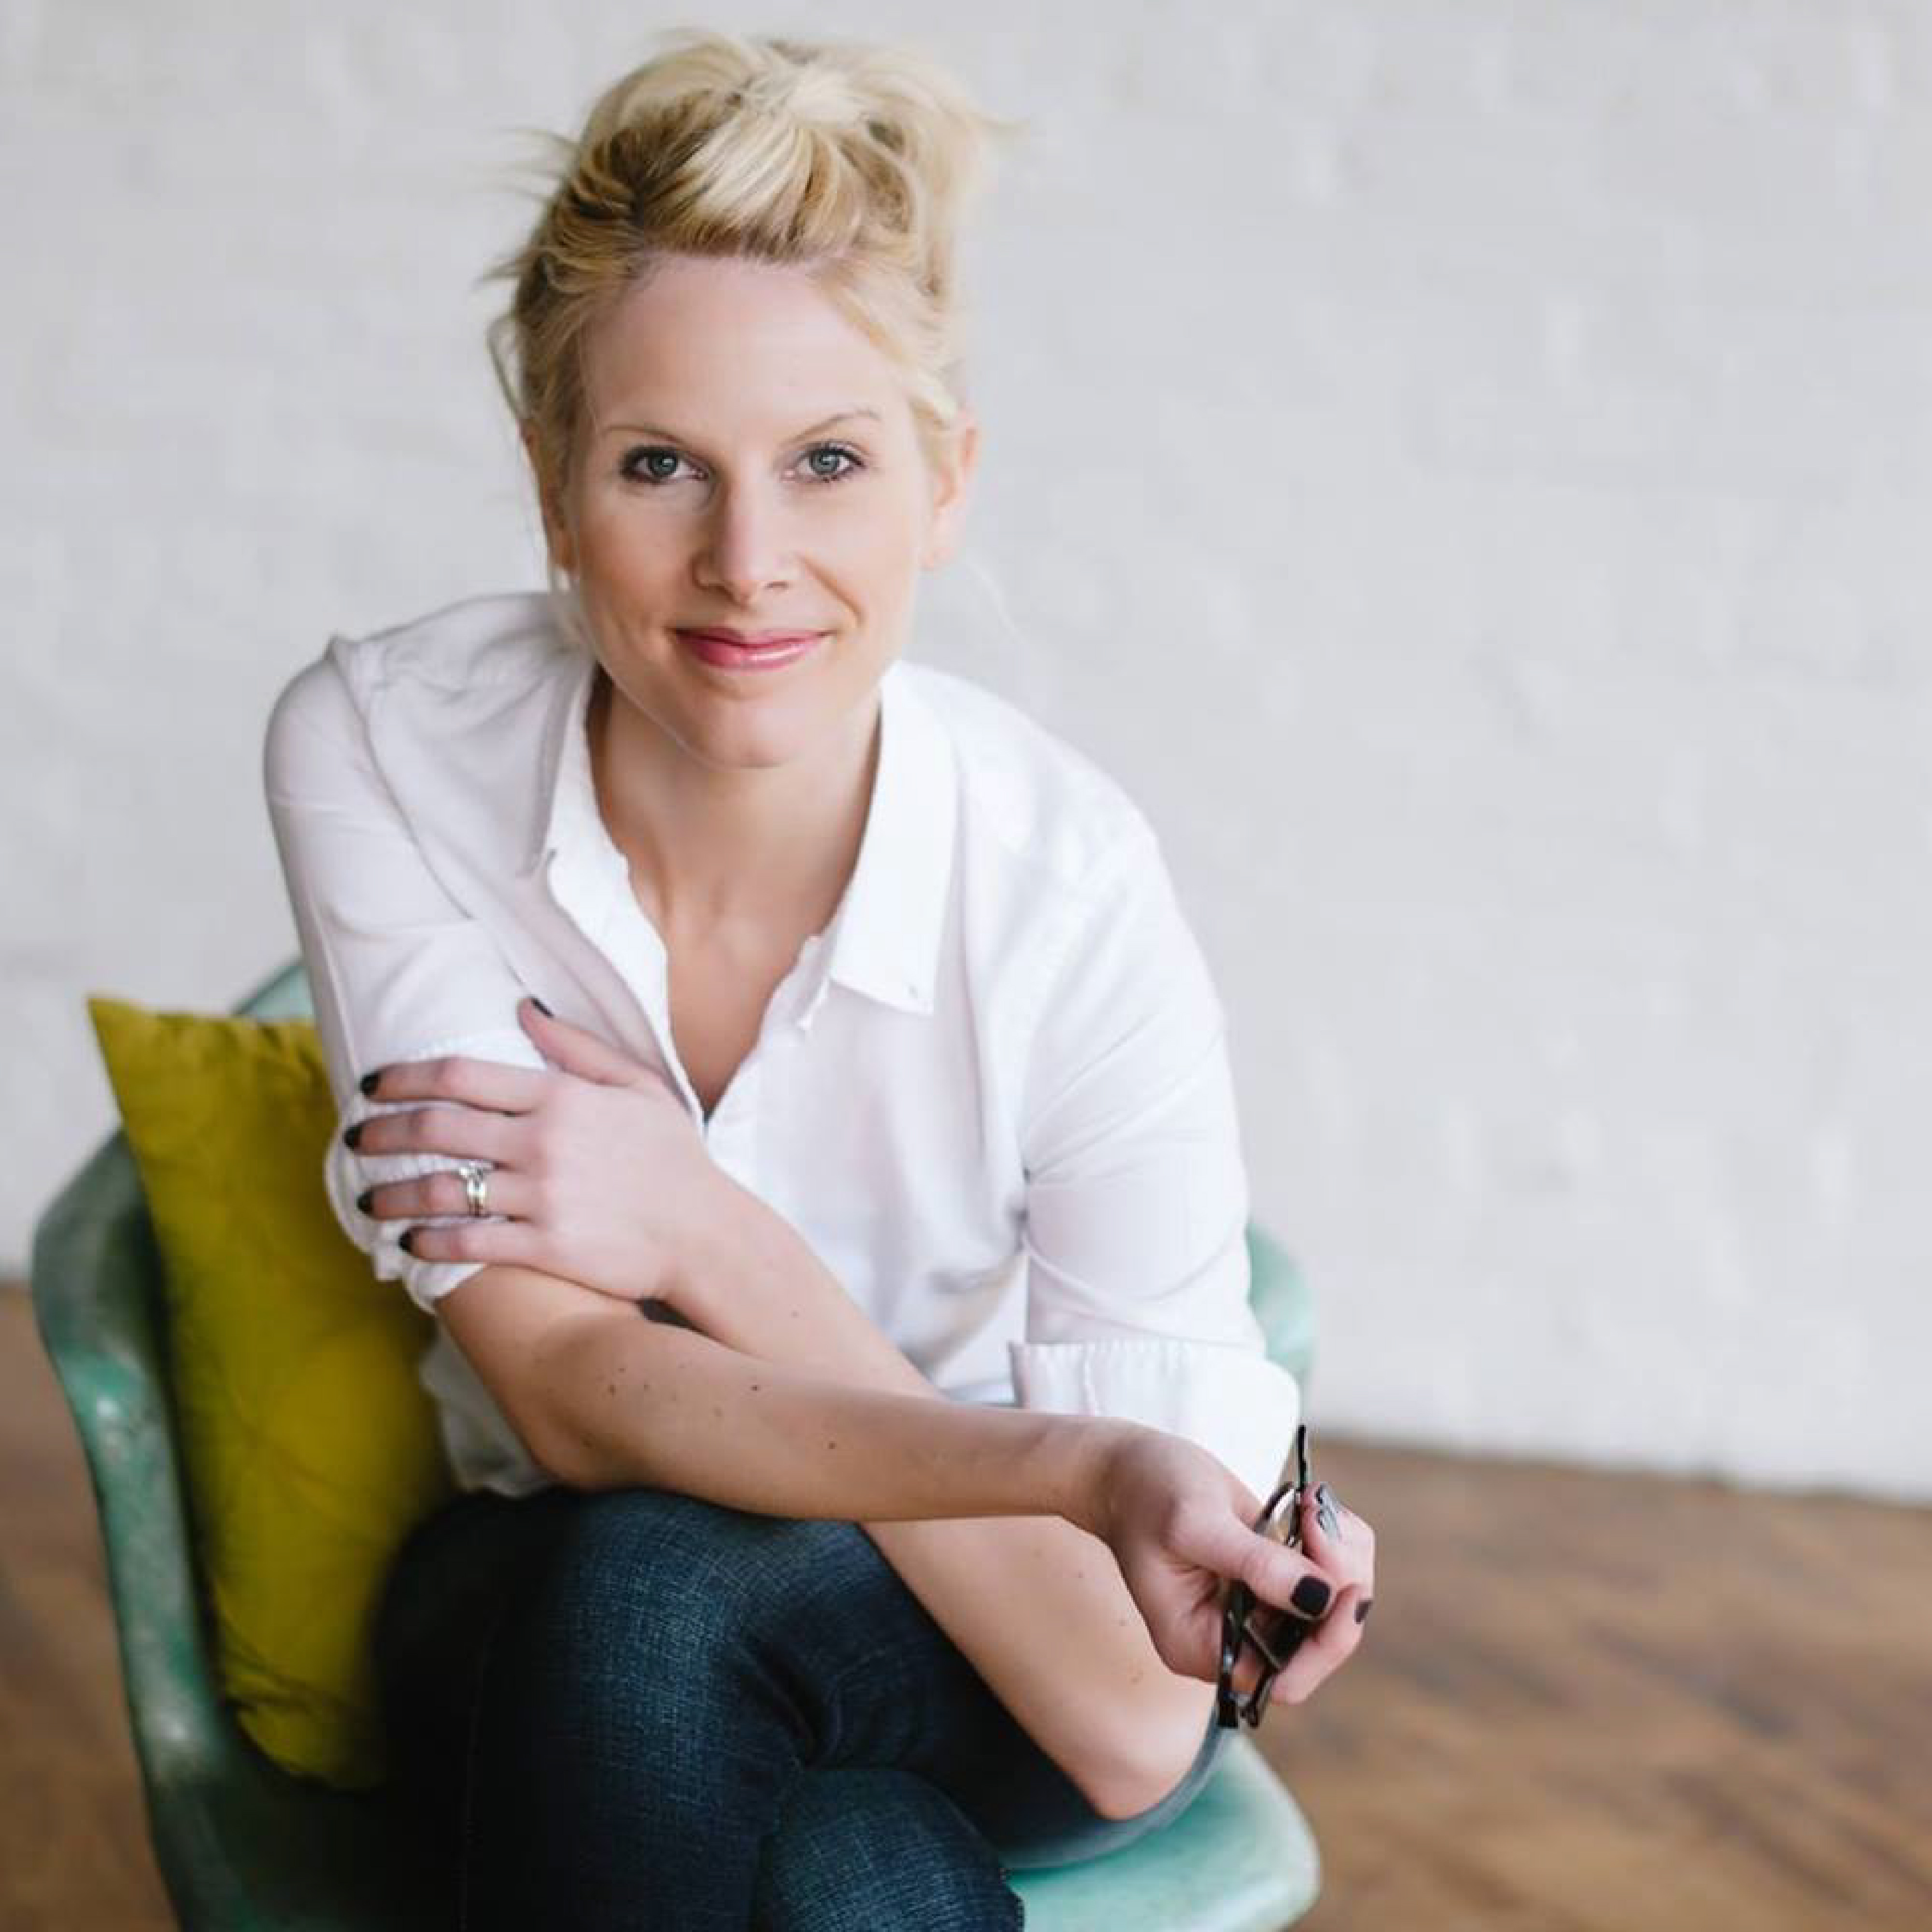 Christian fiction author, Kristy Cambron as featured on Jesus Calling podcast